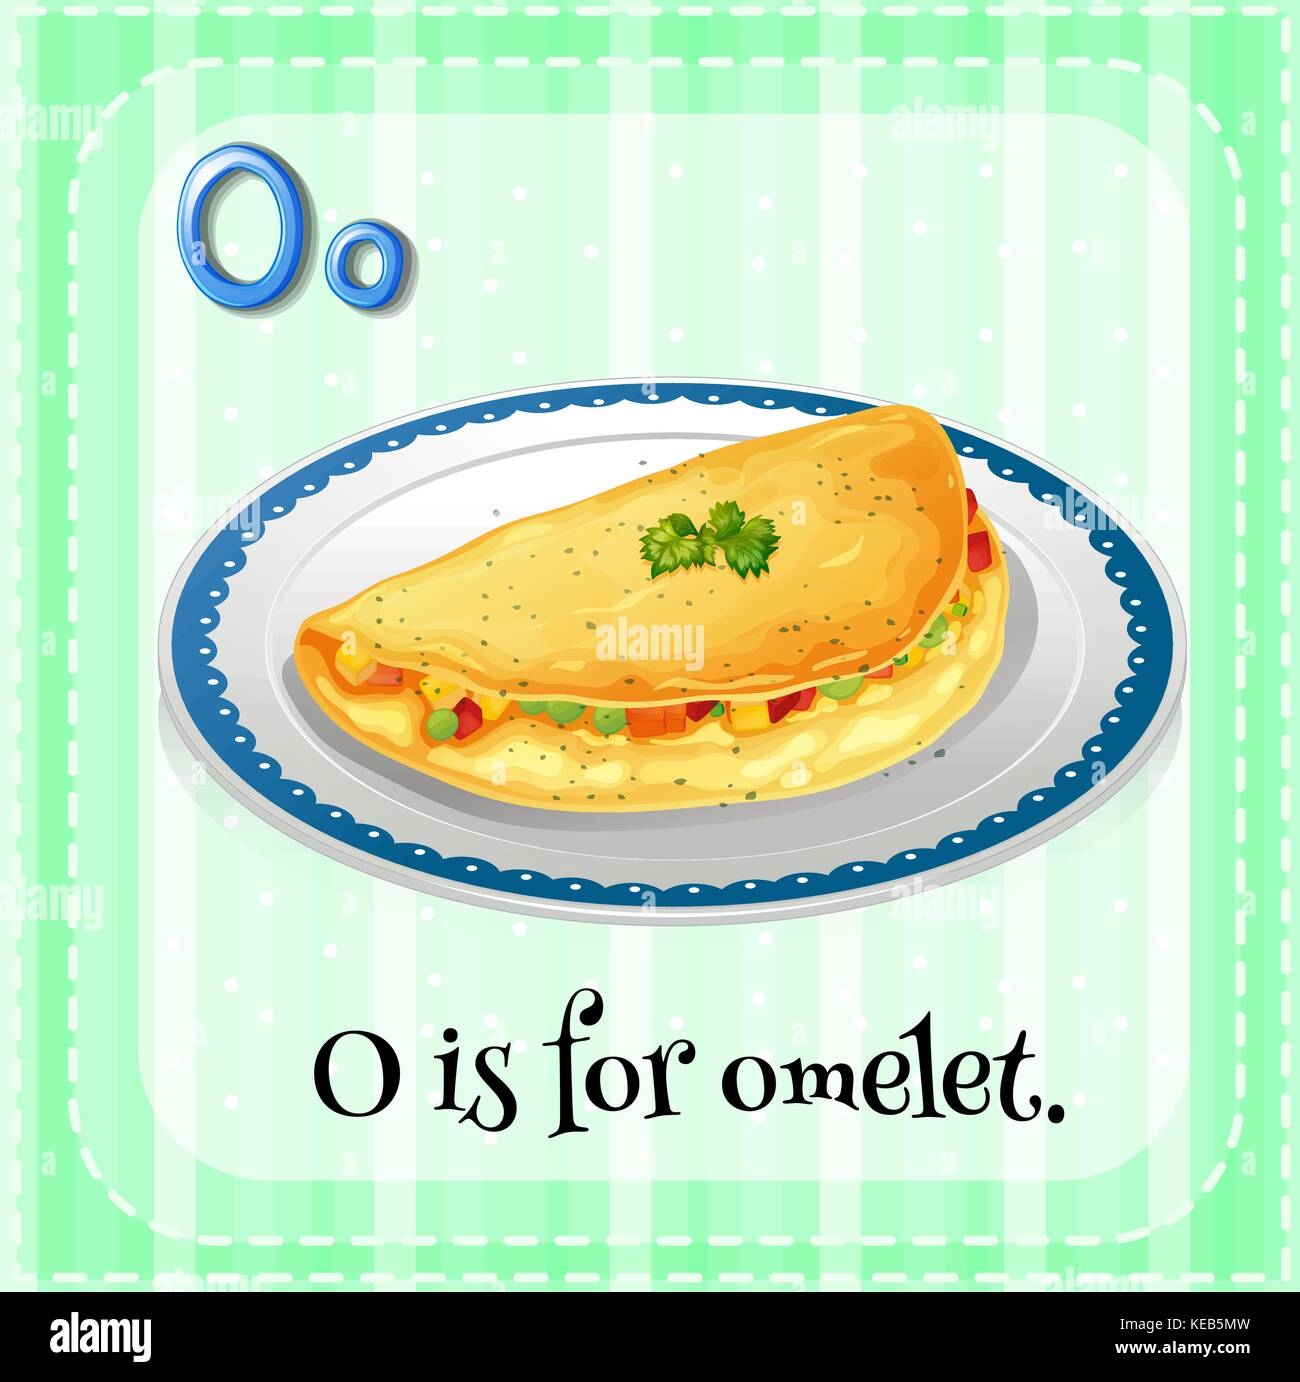 English flashcard letter O is for omelet - Stock Vector